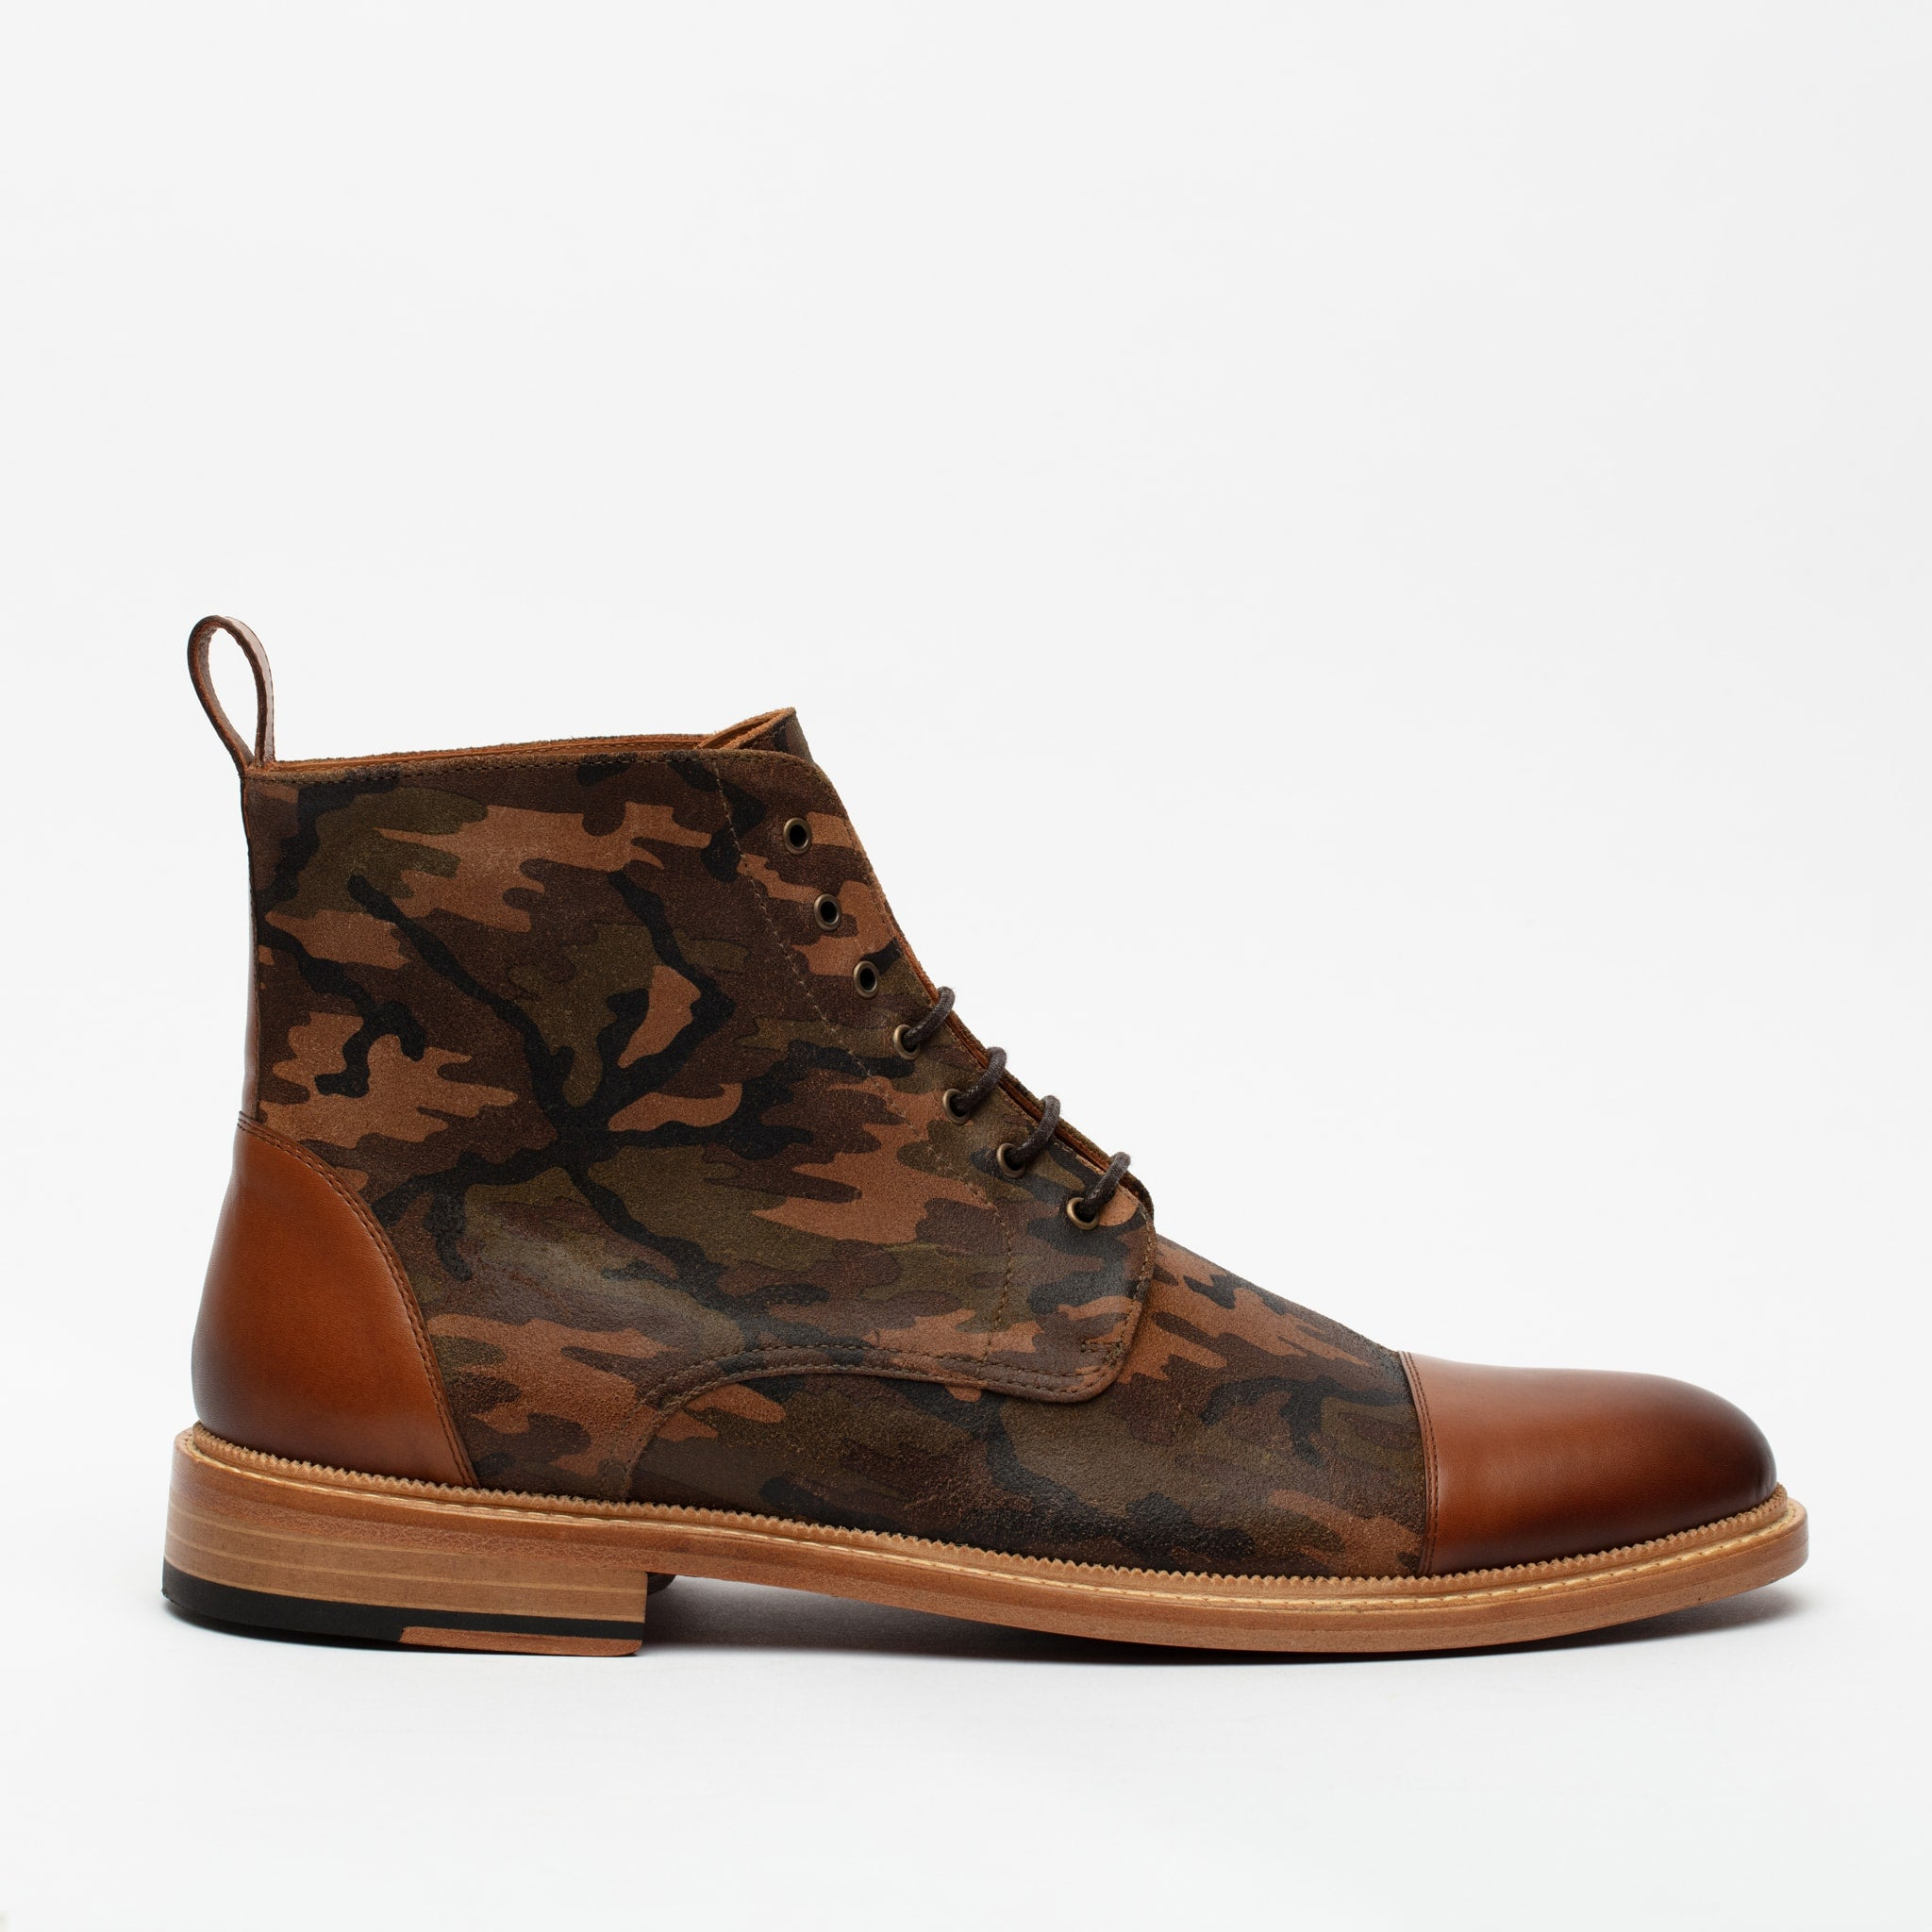 Troy Boot in Camo side view